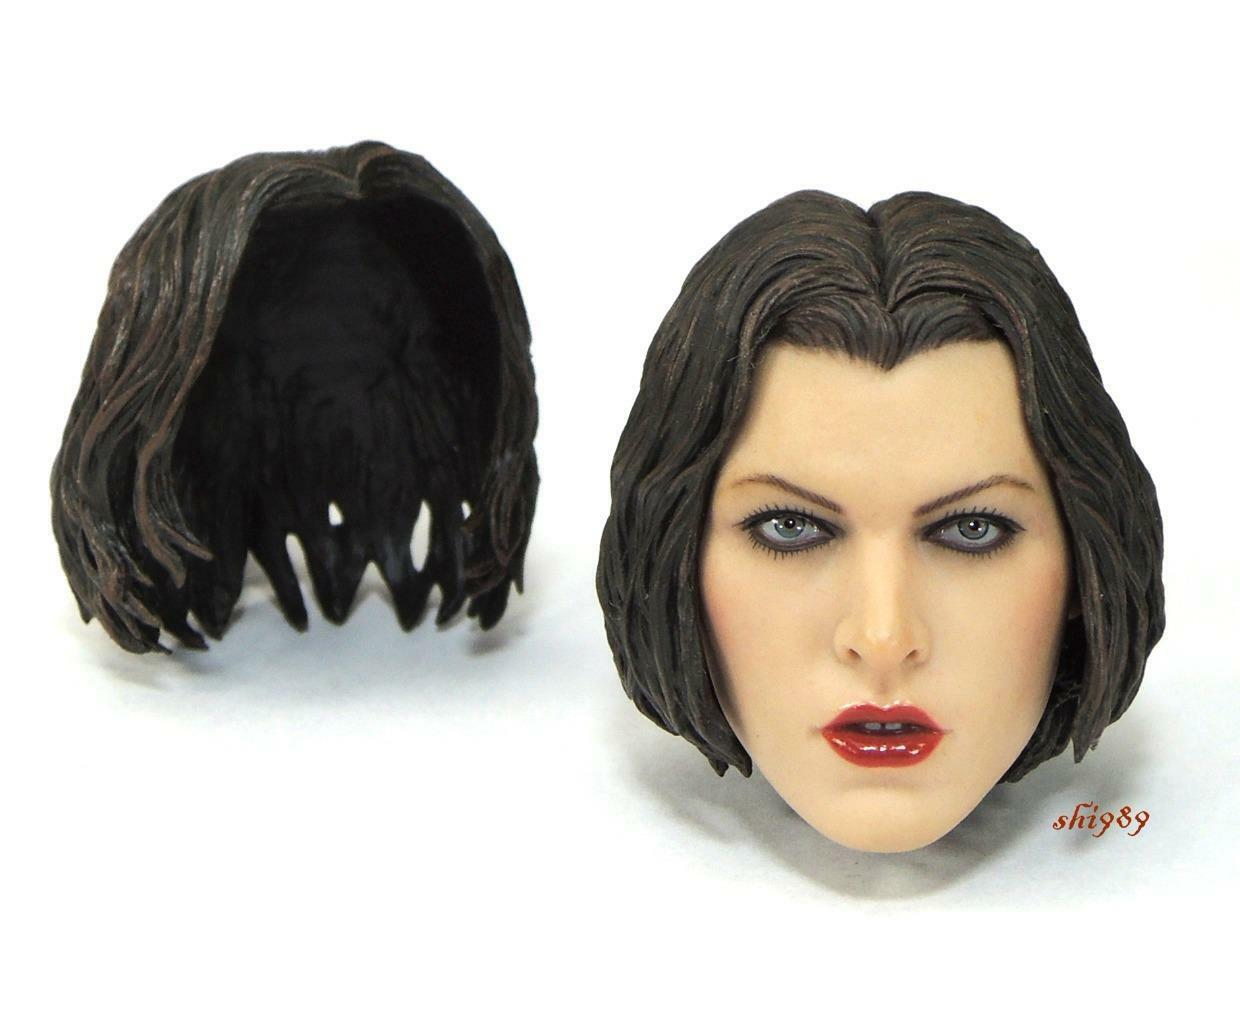 1 6 6 6 Scale Hot Toys MMS139 Resident Evil Afterlife Alice Head Sculpt ( Defect ) 32c81a